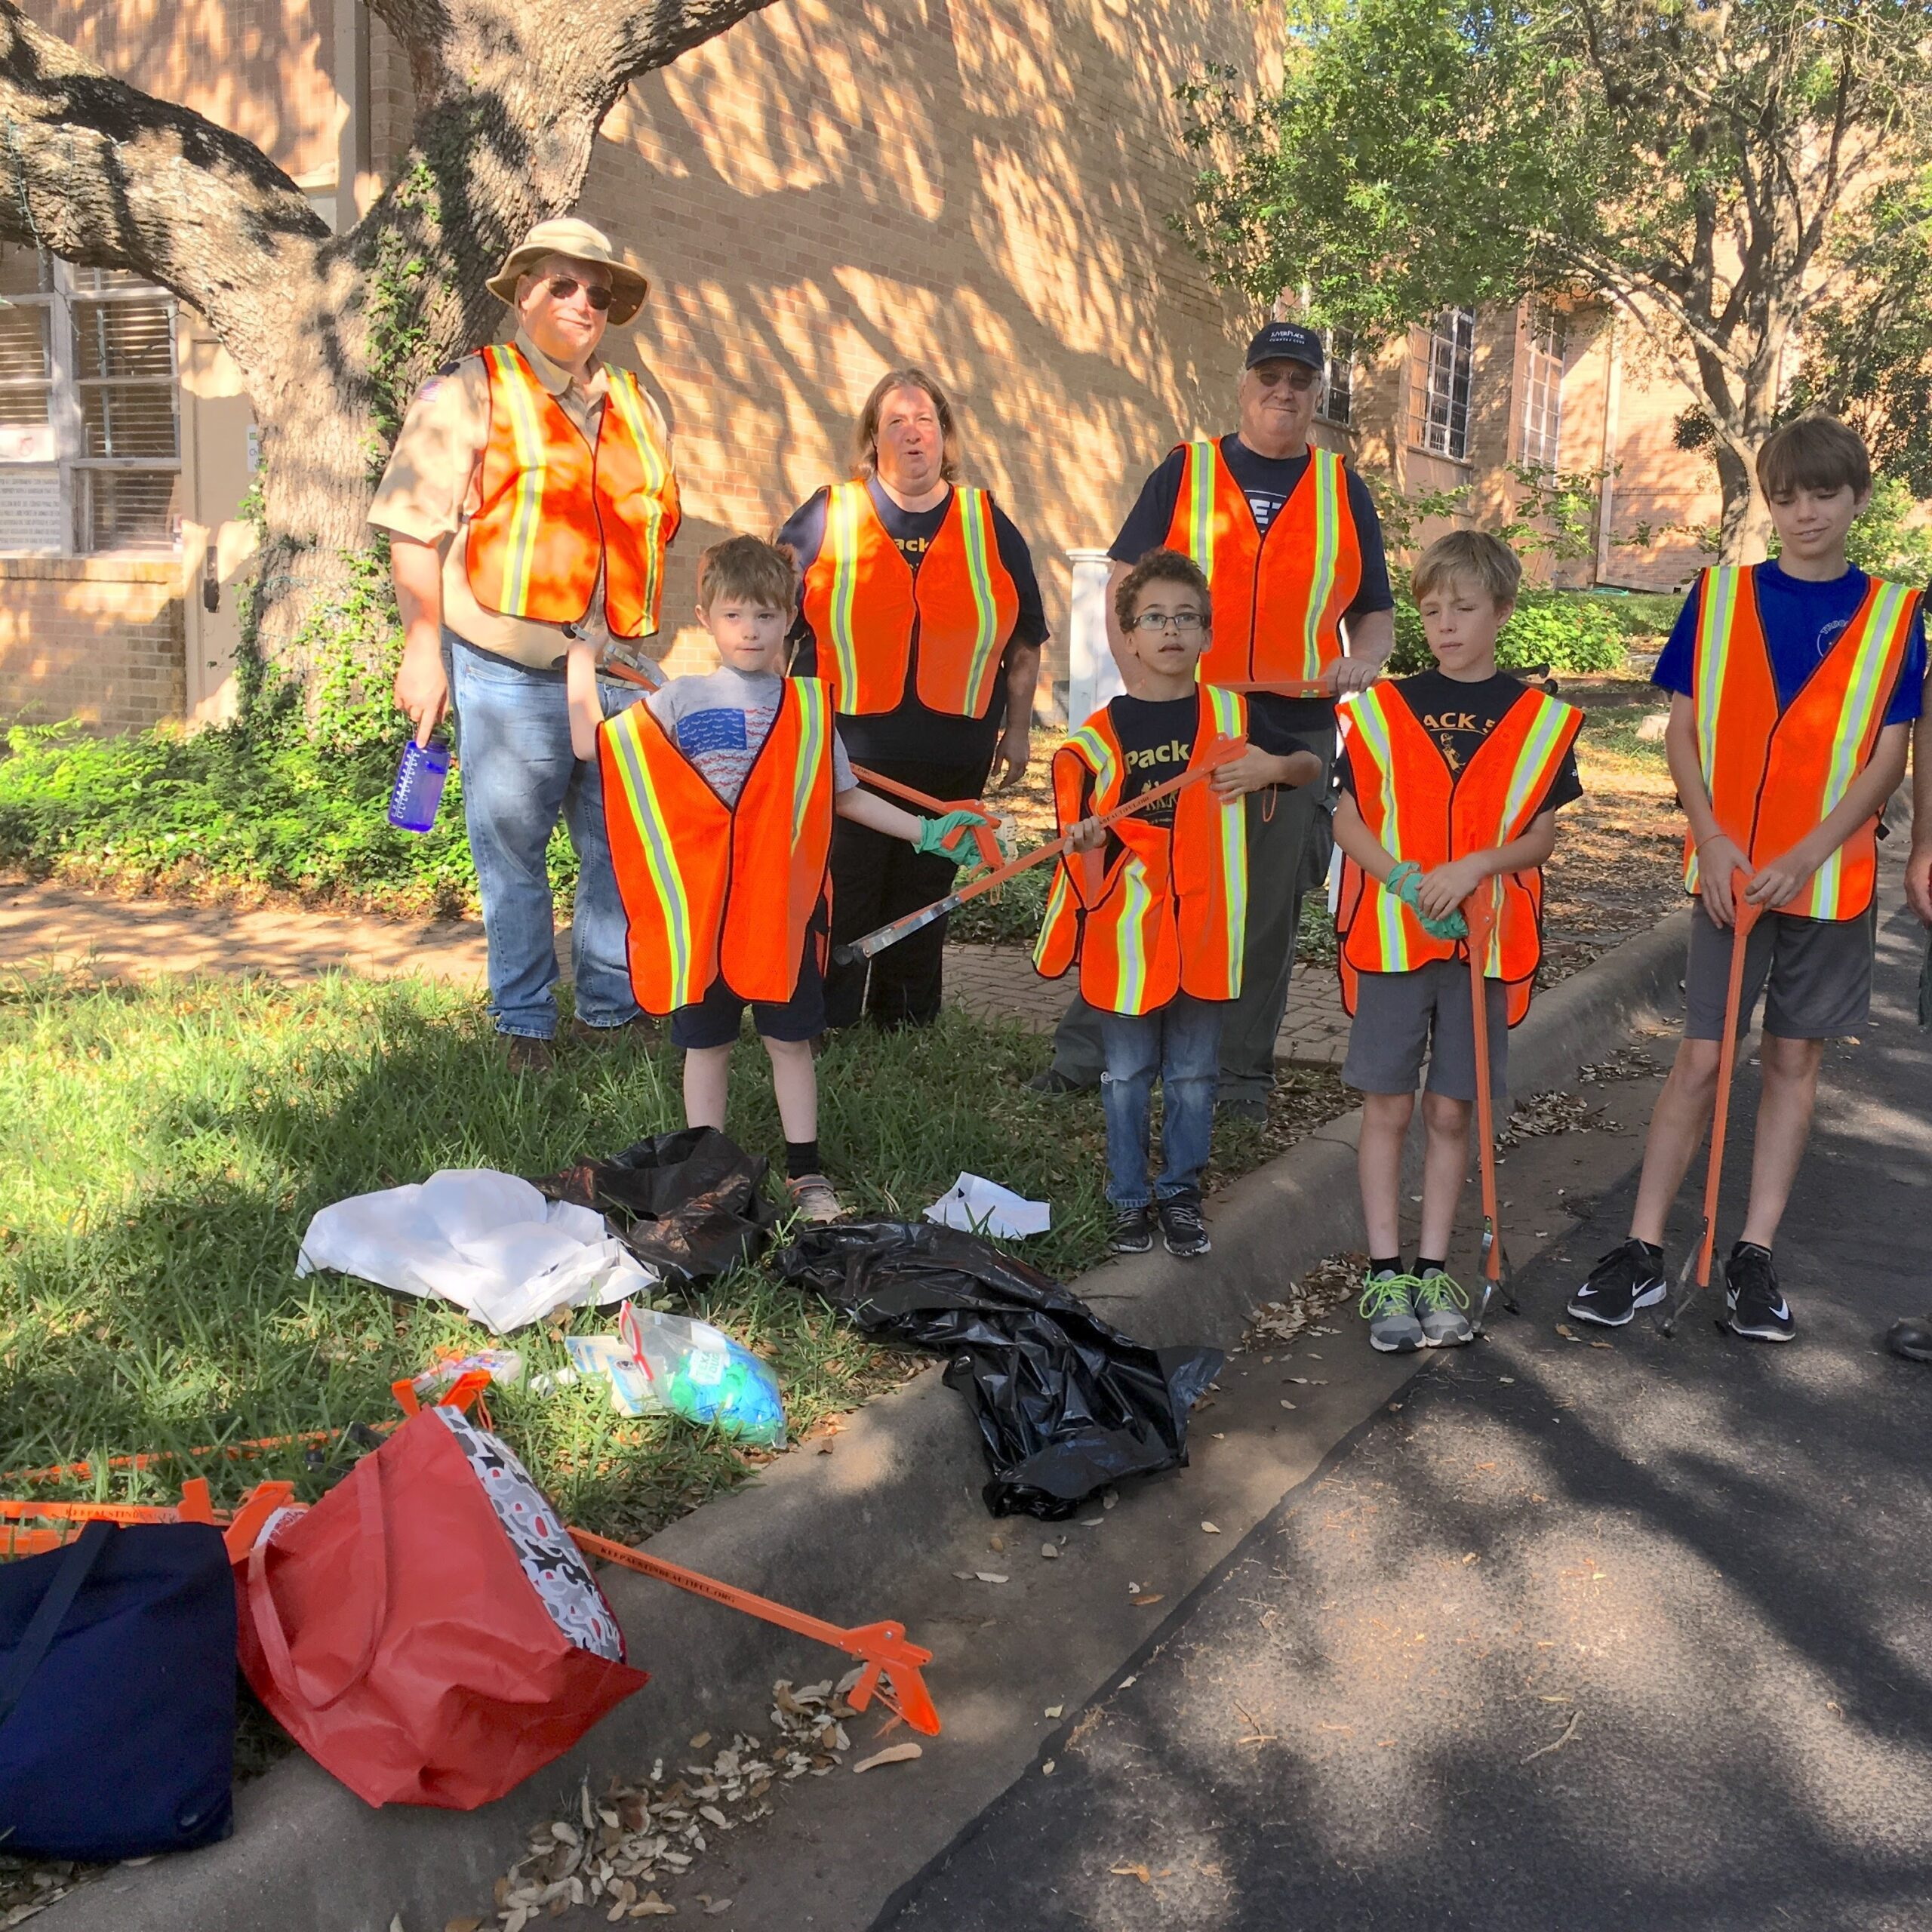 Pack 55 cub scouts and parents pick up trash on Balcones Drive